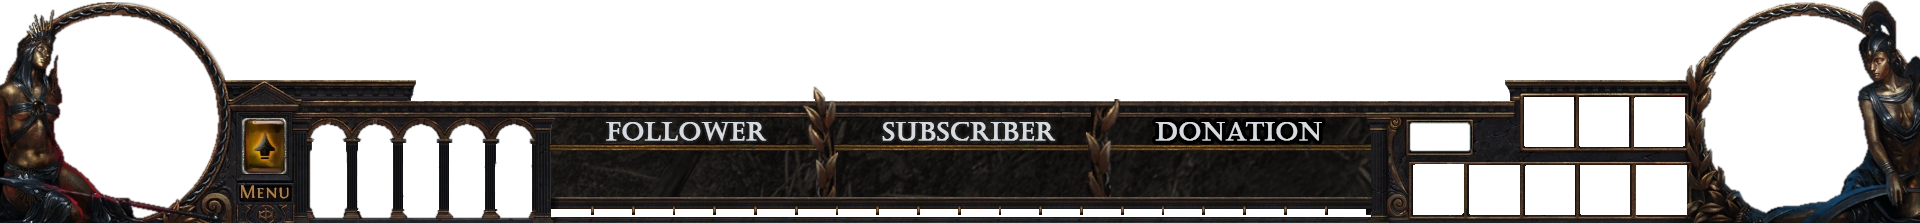 Path of Exile Stream Overlay - free to use - Twitch, Youtube, Mixer,